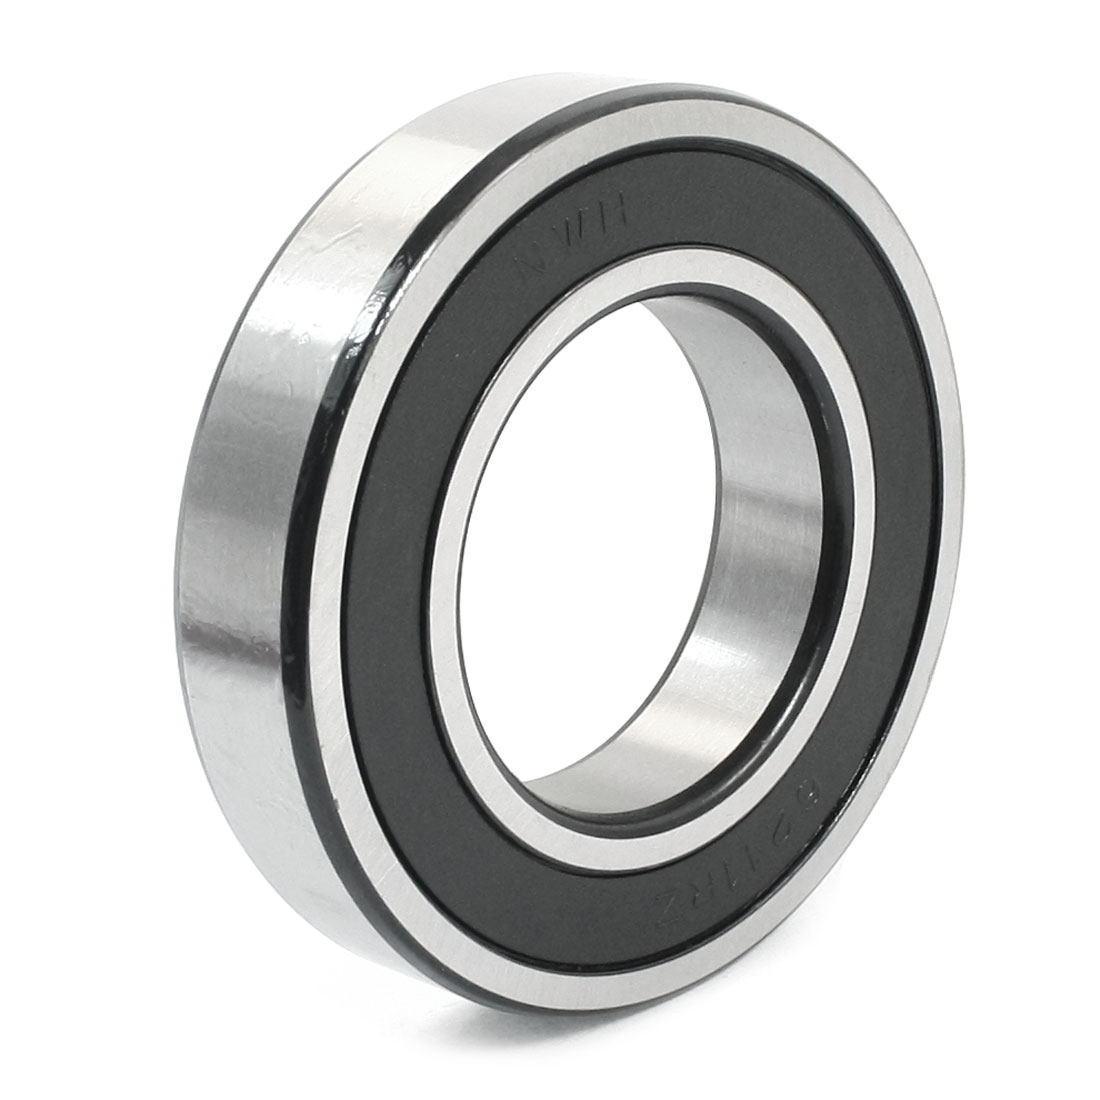 6211-2RS 55mmx100mmx21mm Rubber Sealed Deep Groove Radial Ball Bearing